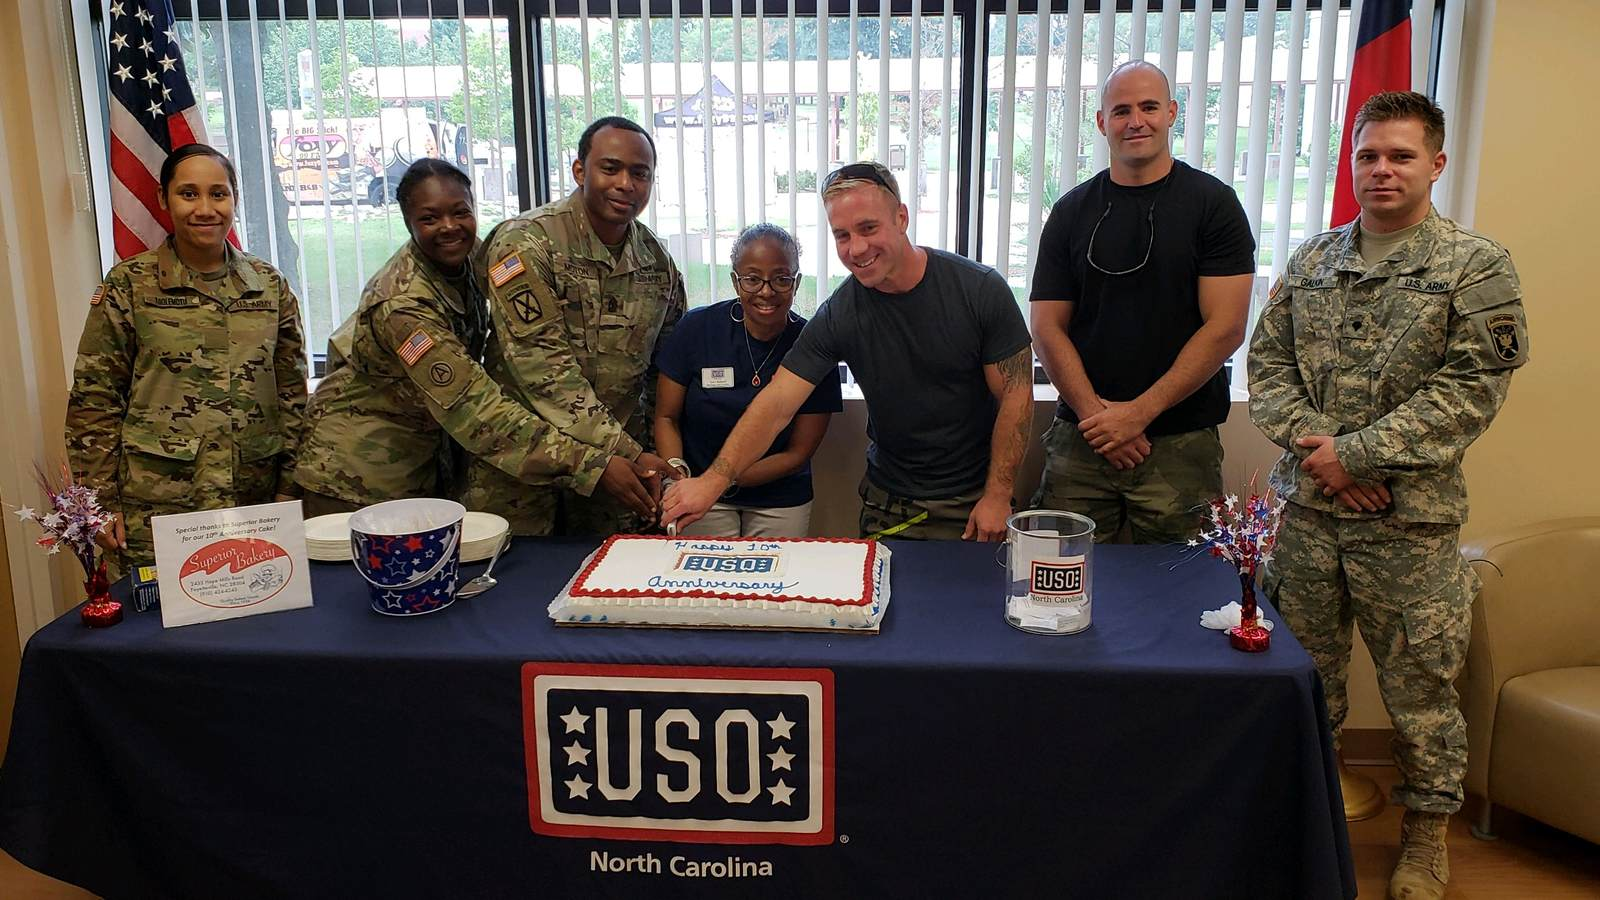 The USO at Fort Bragg